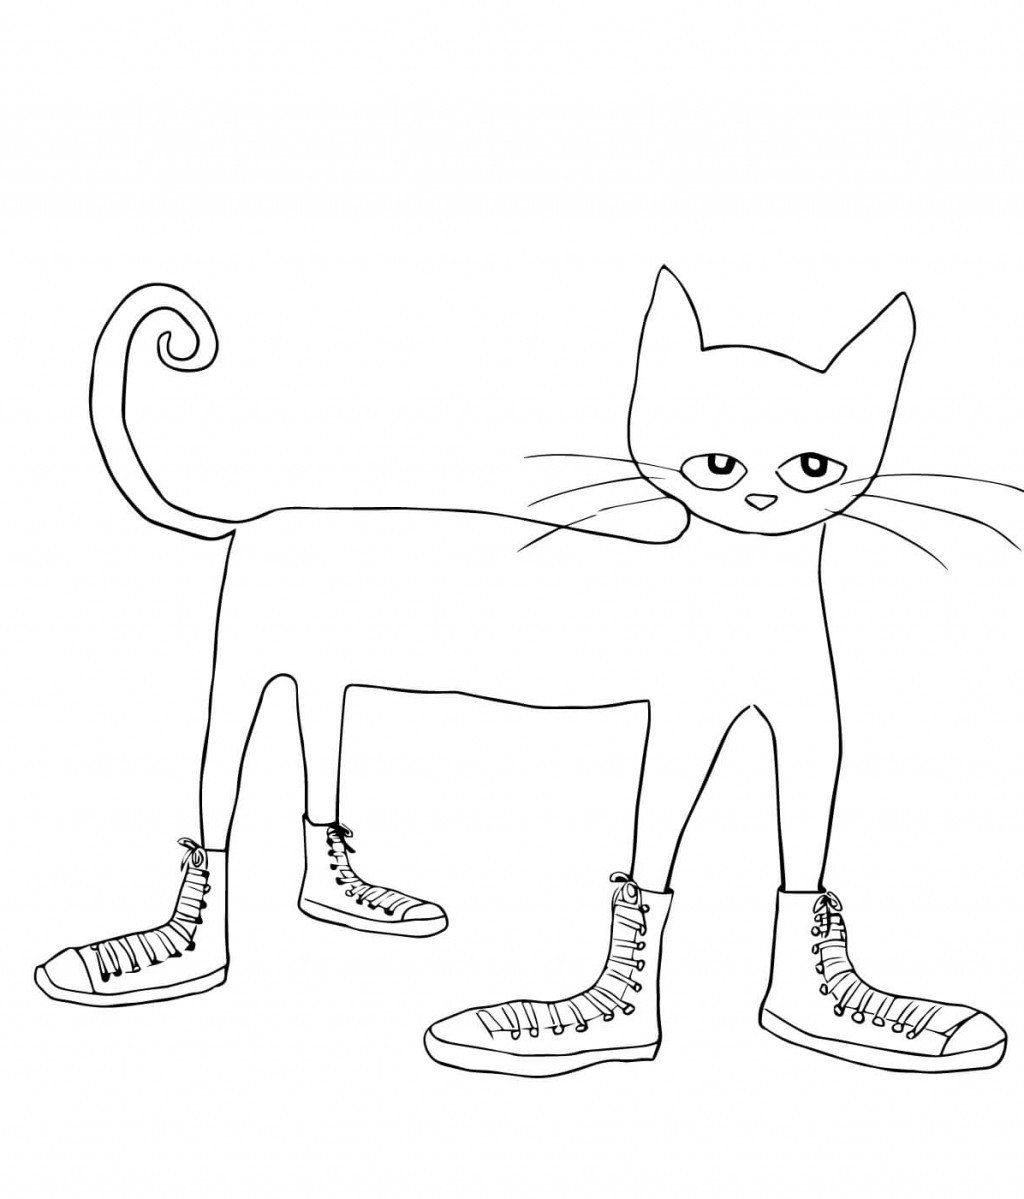 Pete The Cat Coloring Page Fresh Pete The Clipart Cat Clipart 128 Transparent Clip Arts Images And Pete The Cat Shoes Pete The Cat Buttons Pete The Cat